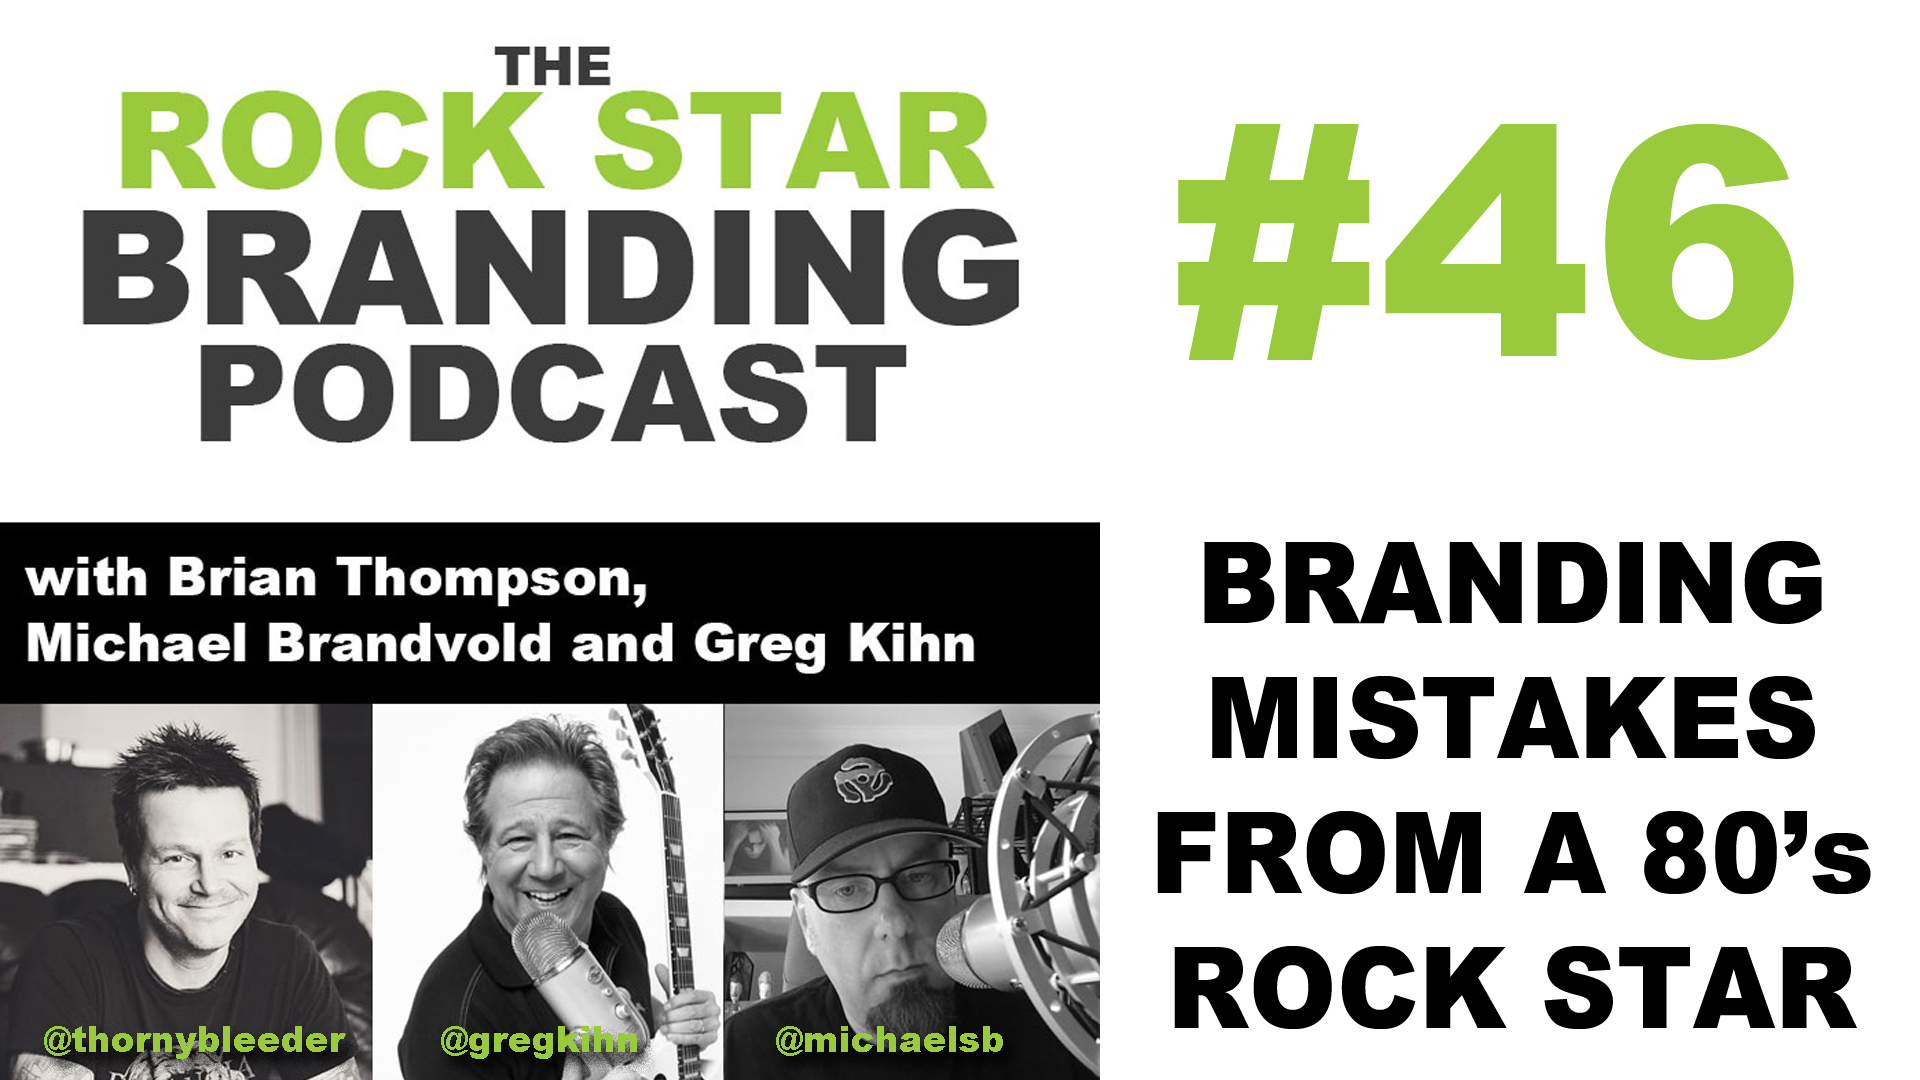 Branding Mistakes from a 80's Rock Star on Rock Star Branding